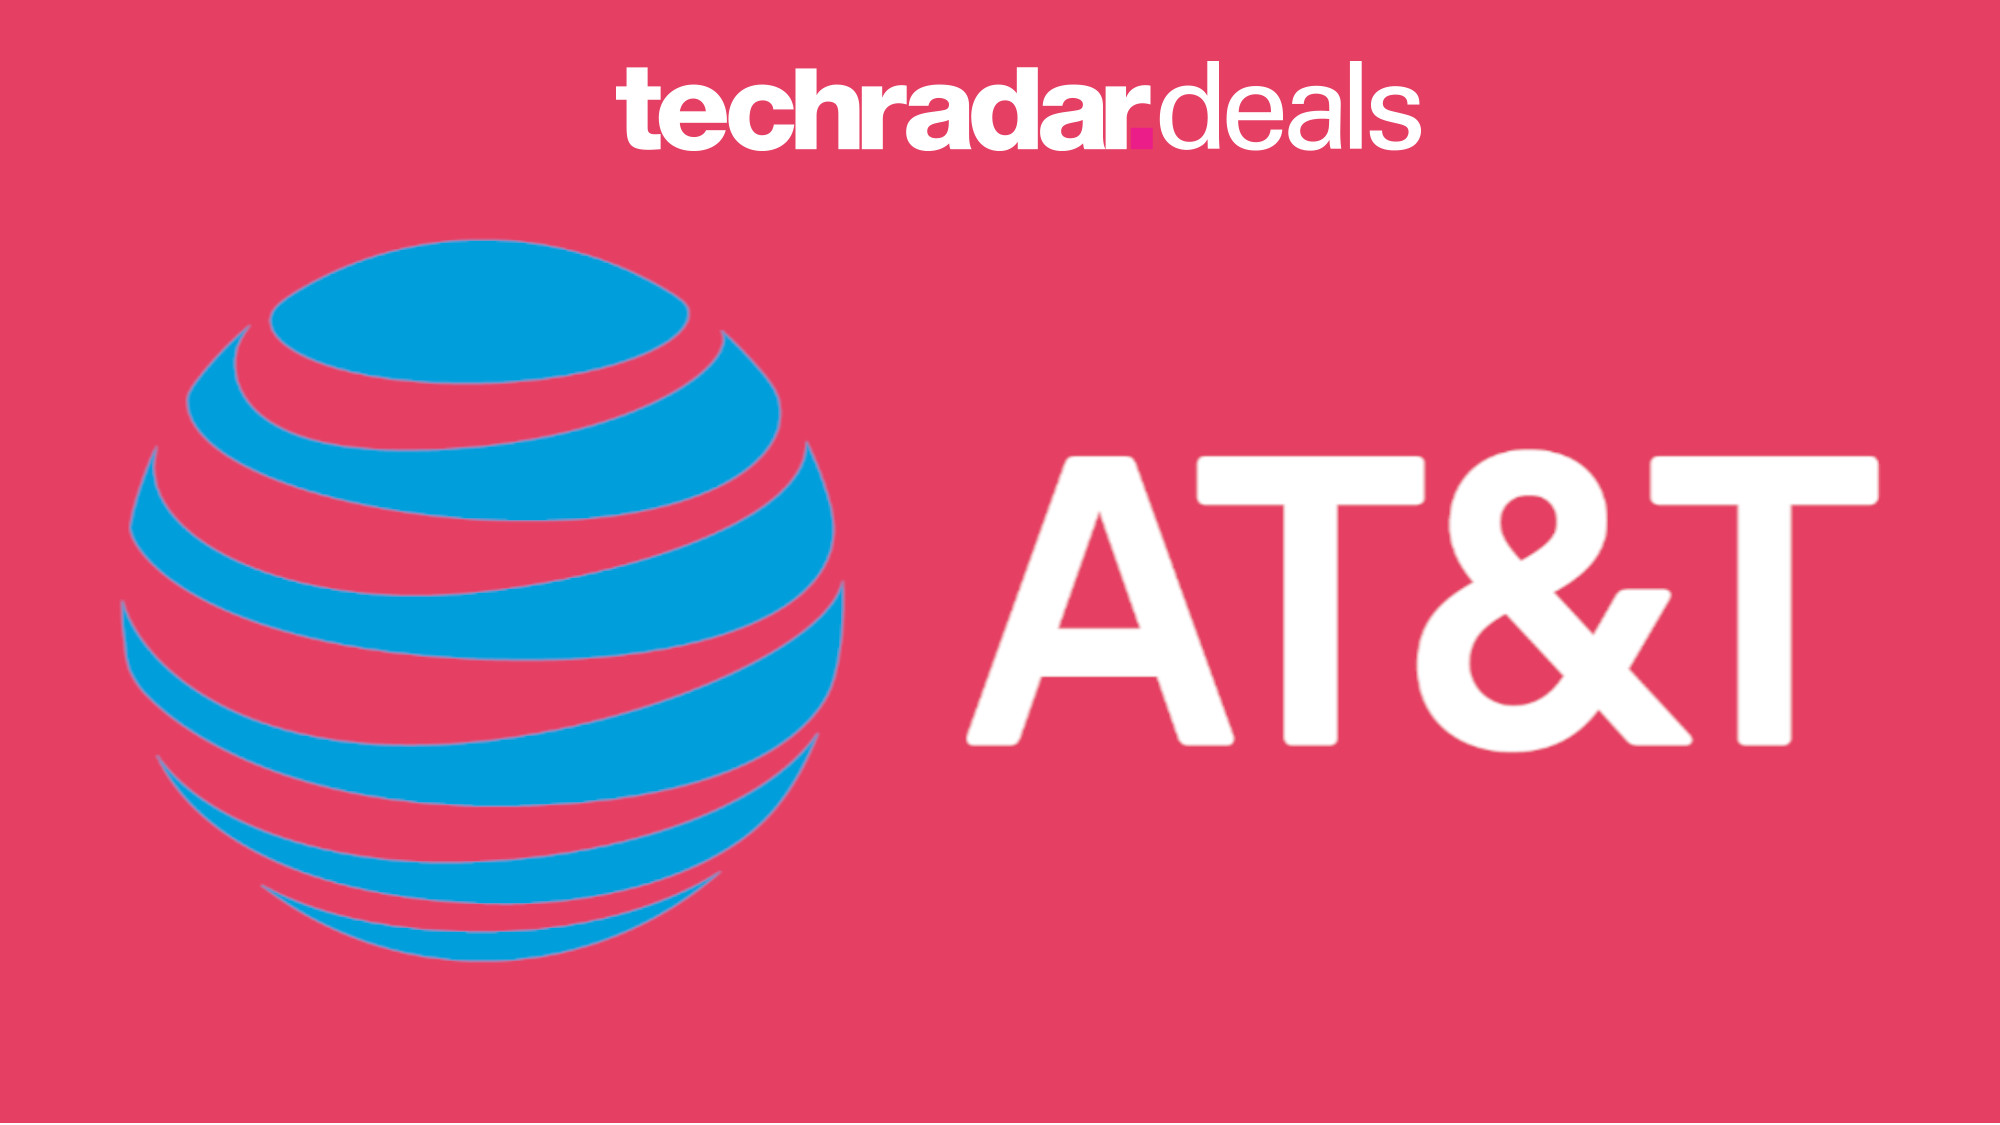 The Best At T Phone Deals In November 2020 Free Iphones Discounts And More Techradar